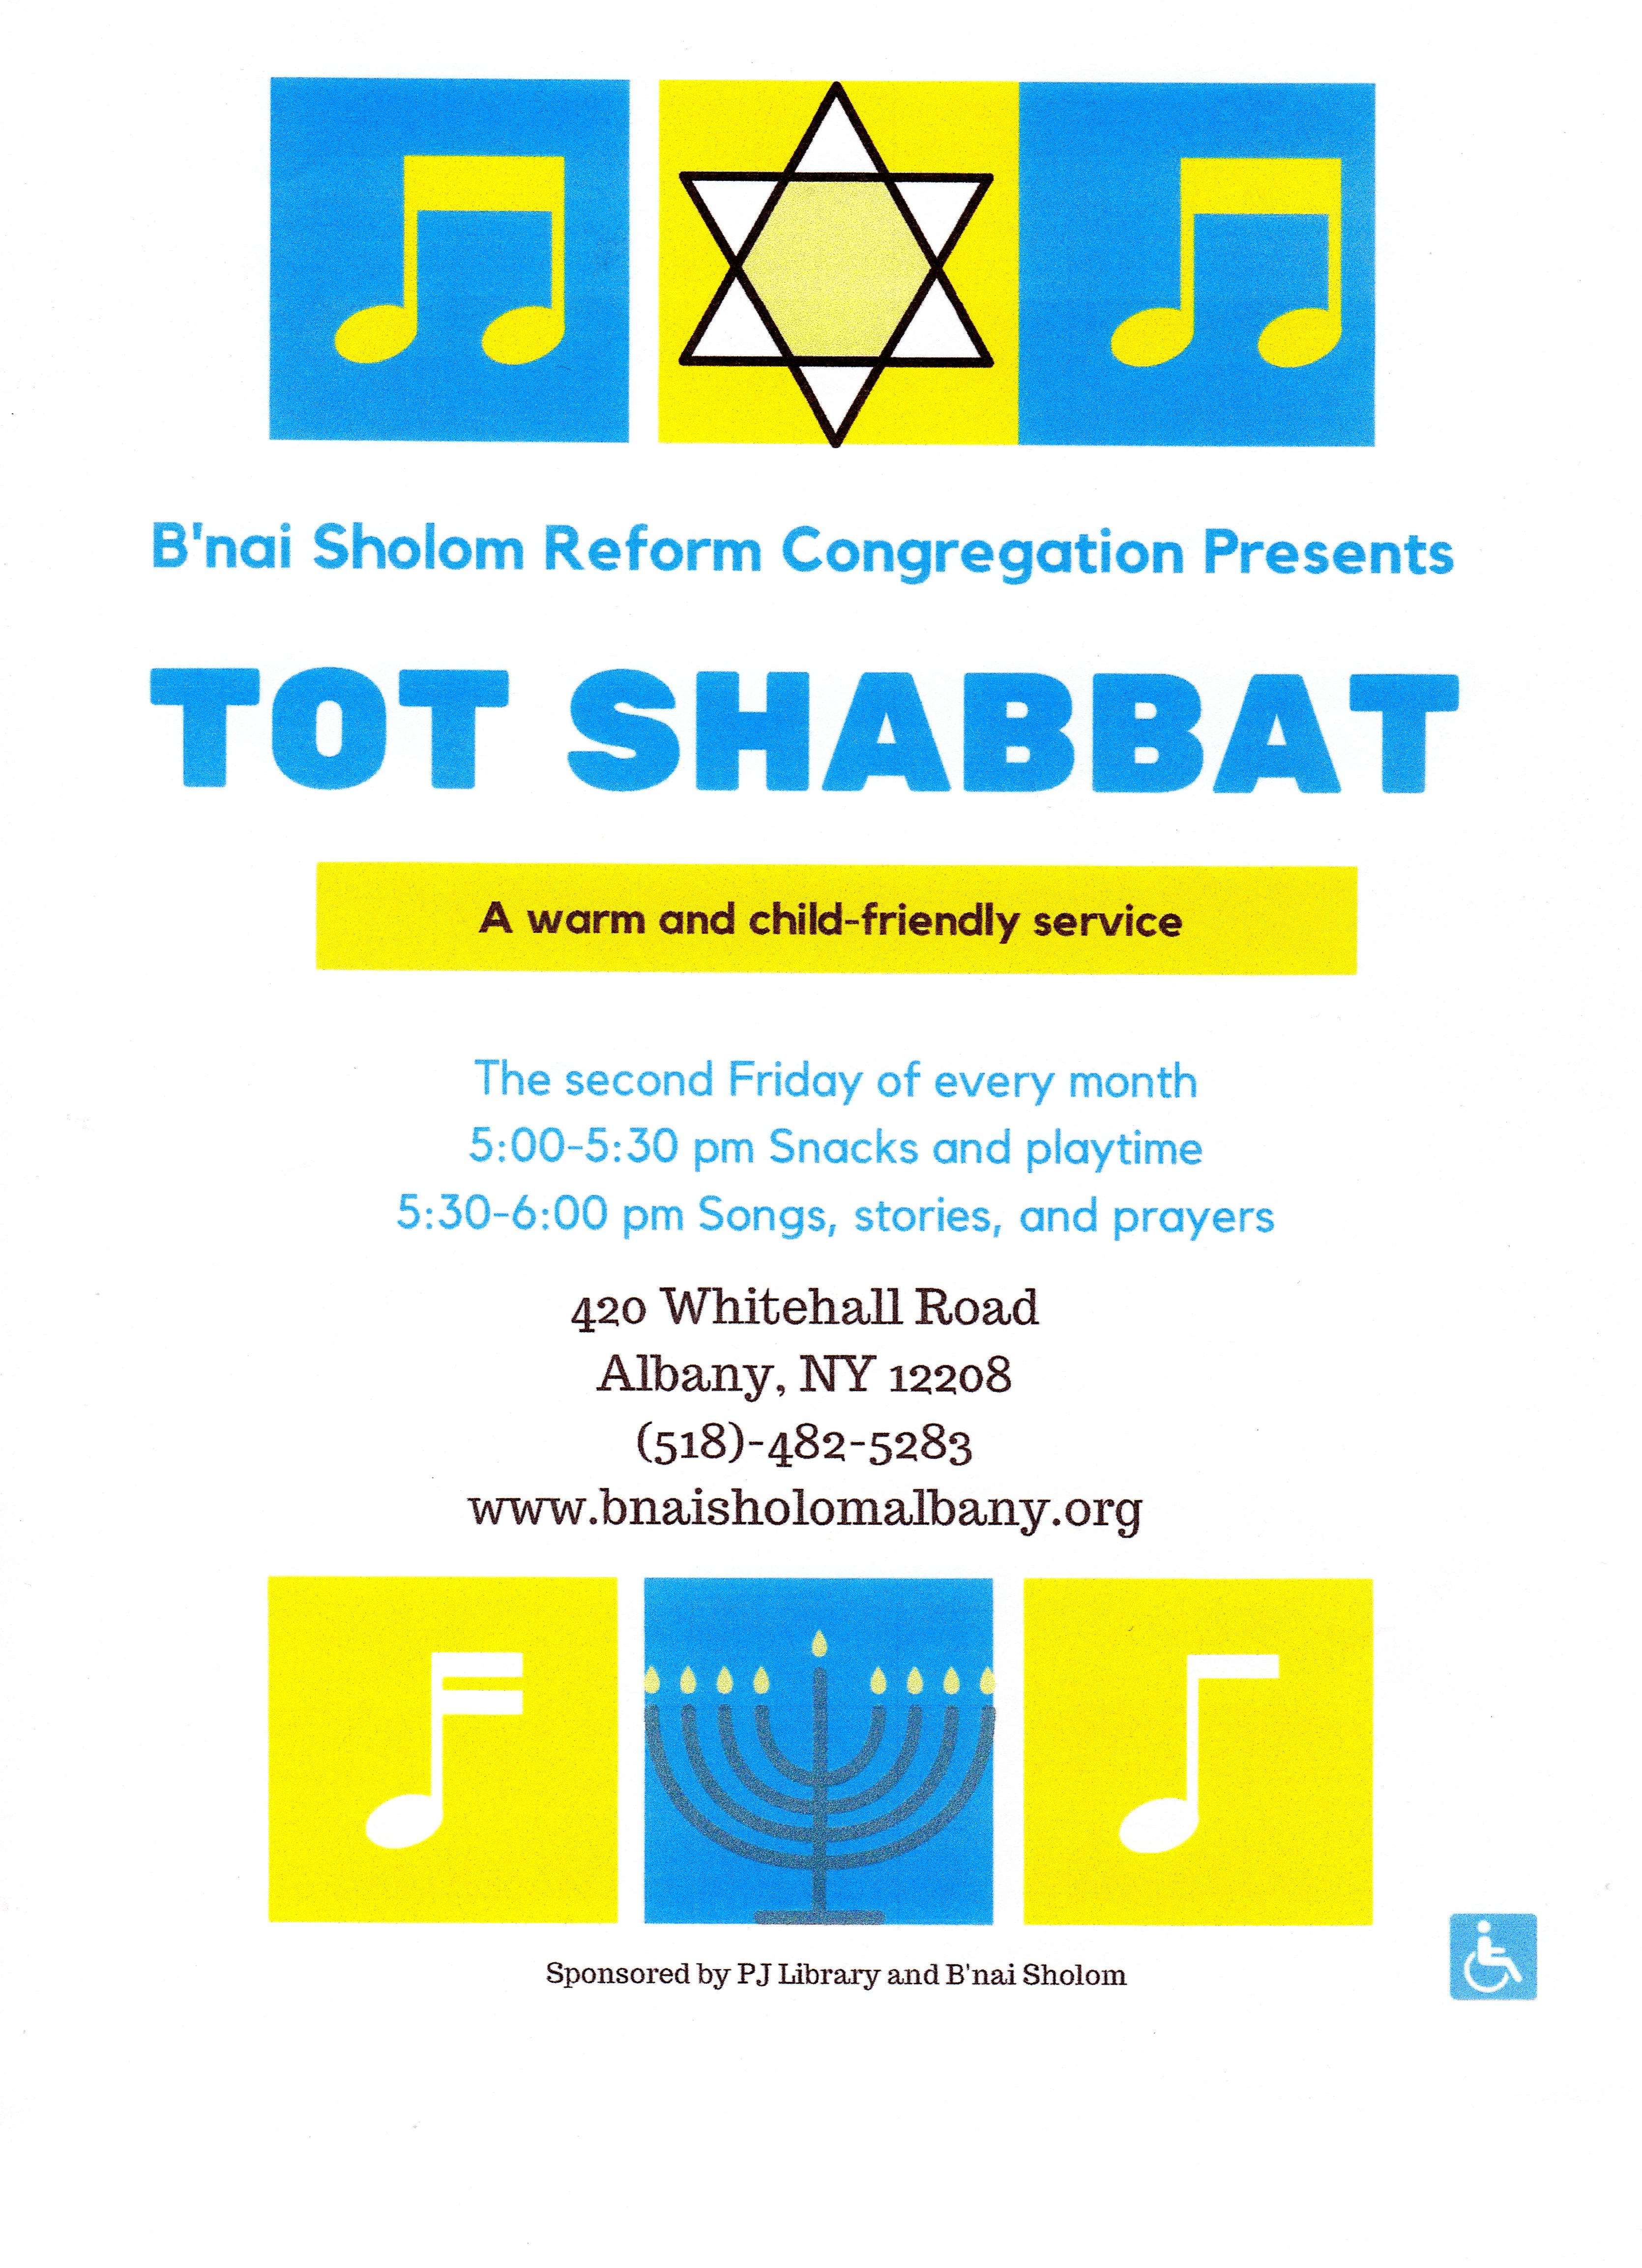 Monthly Tot Shabbat Service